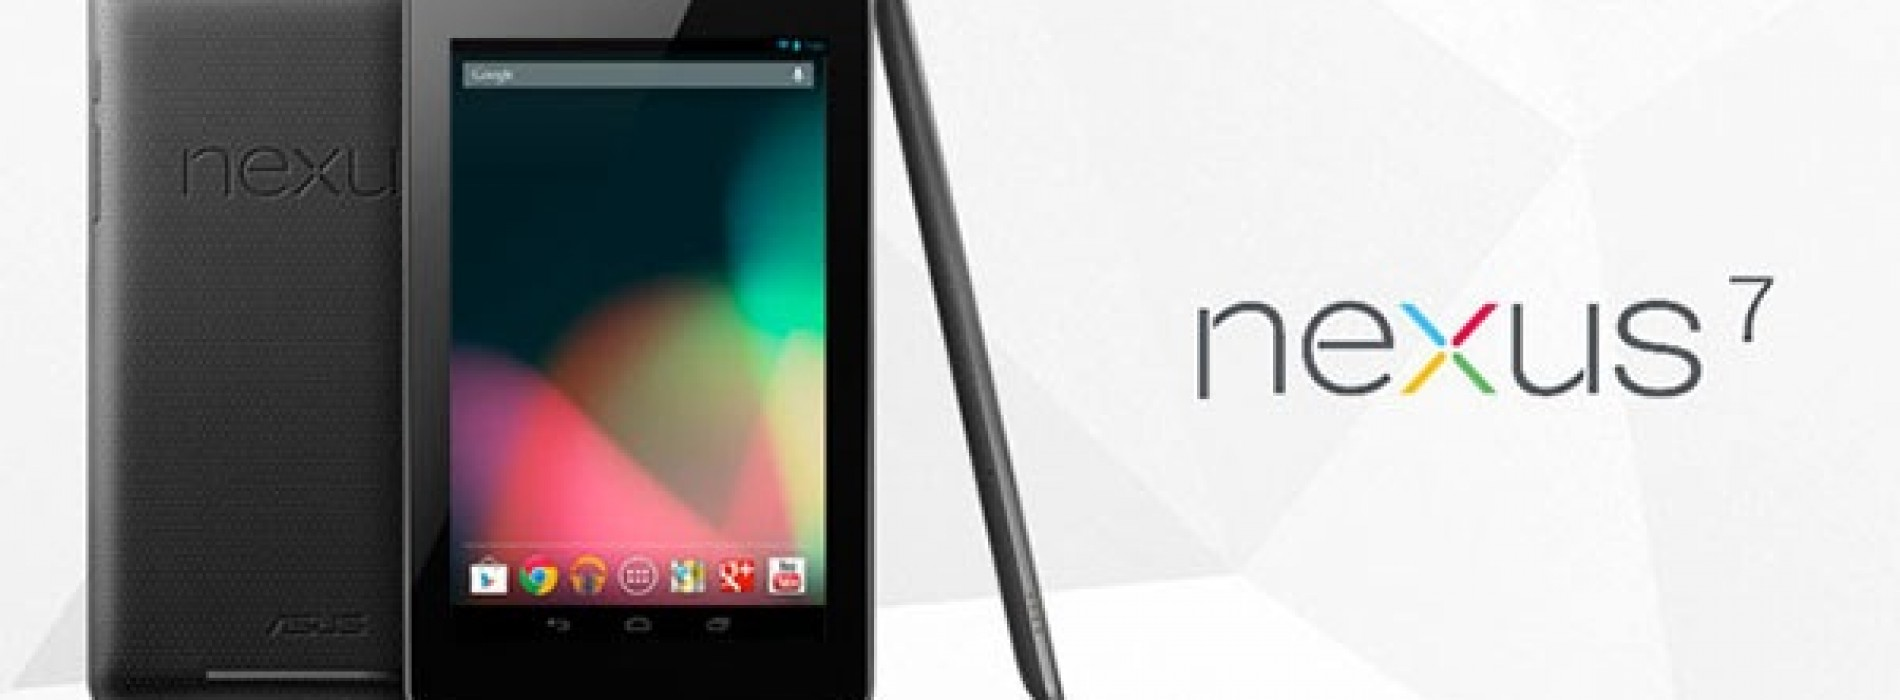 Nexus 7 tablet gets Android 4.1.1 update, adds Google Wallet and performance boost